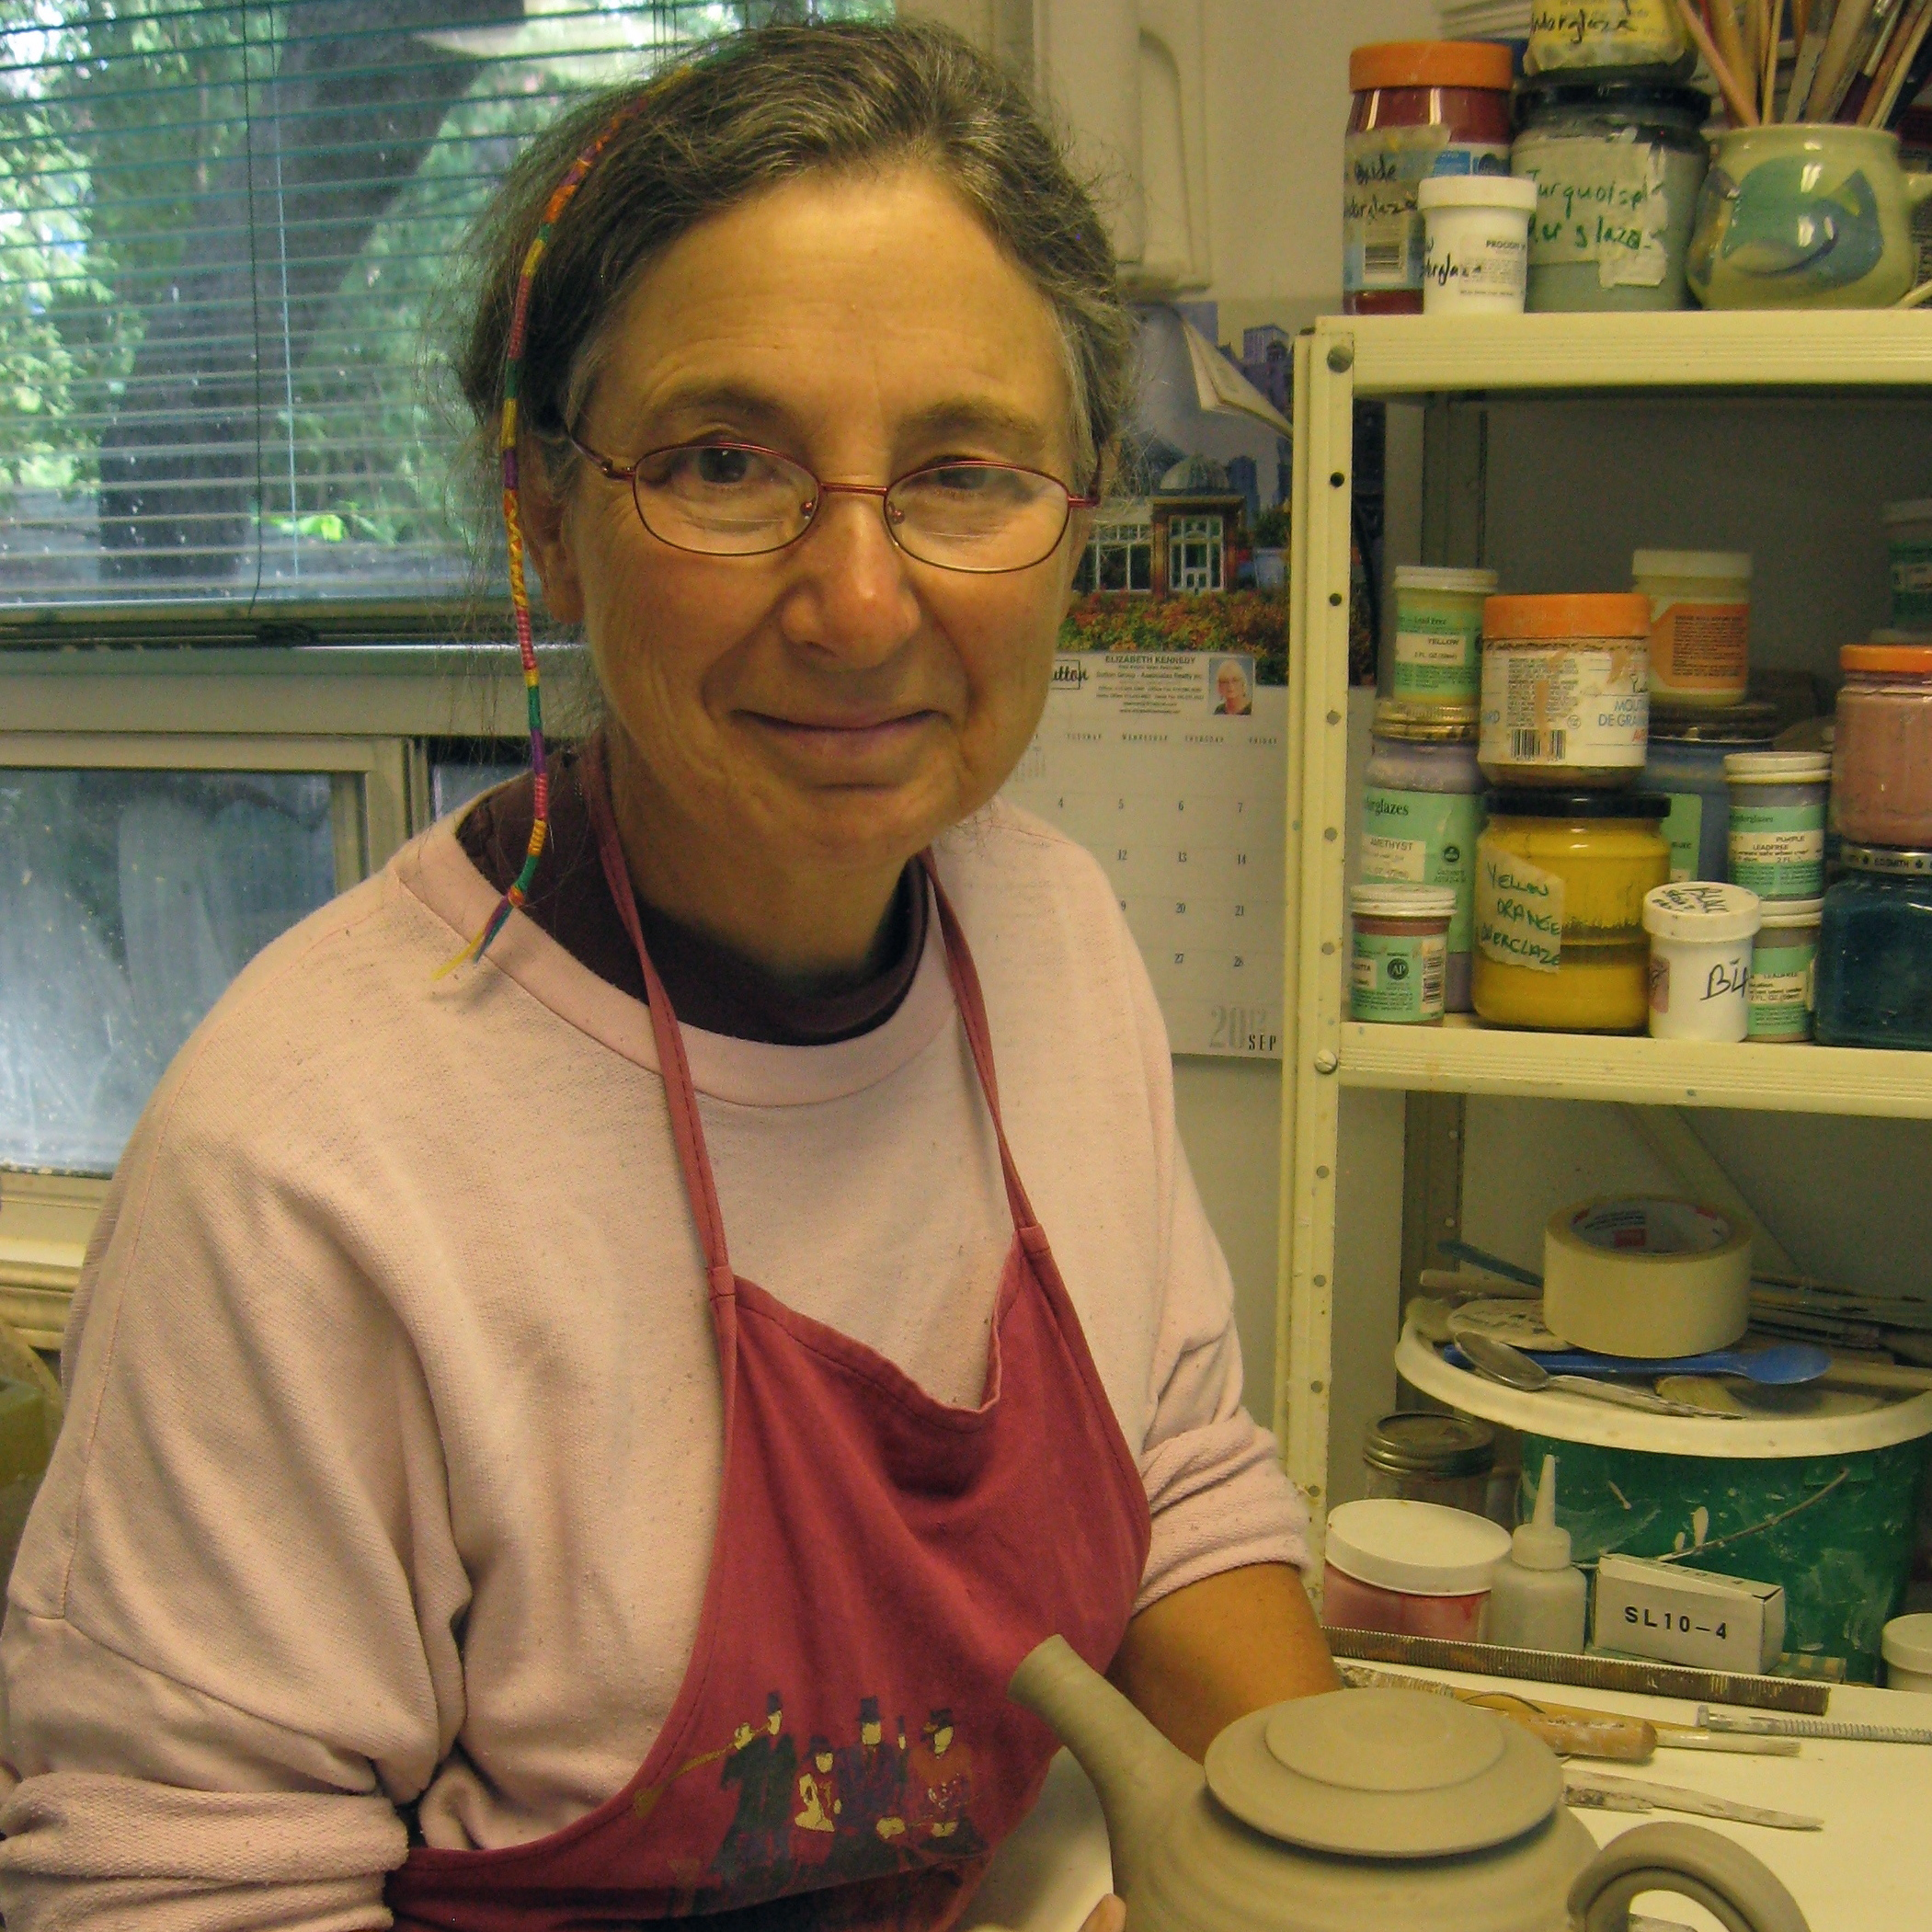 Nancy Solway - Nancy Solway has been making and exhibiting claywork for over 30 years. She is known for her fine porcelain functional ware and her award-winning work in raku. She was co-founder of Clay Design in Toronto, a member of the board of Directors of the Ontario Crafts Council and is one of the five Canadians represented in